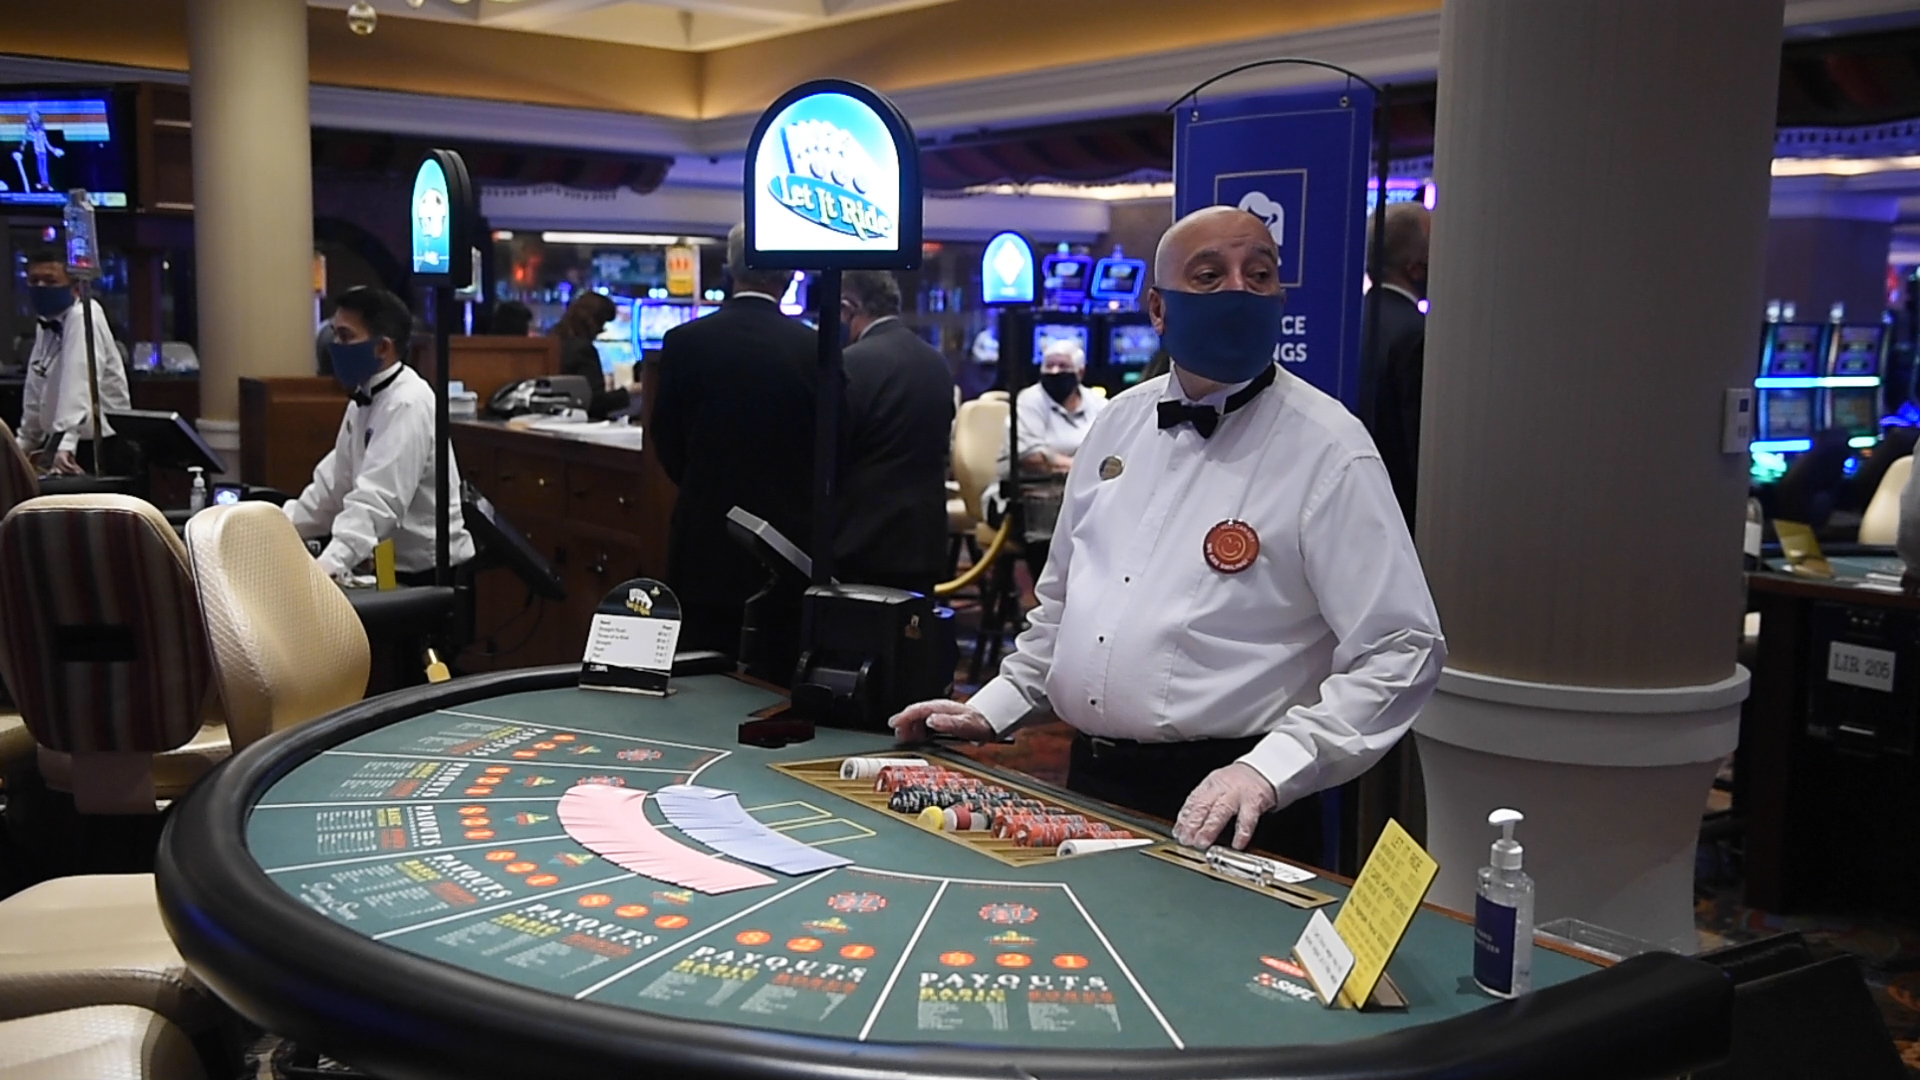 Ready To Play:' Turning Stone, Other Oneida Nation Casinos With Regard To Turning Stone Bingo Schedules March